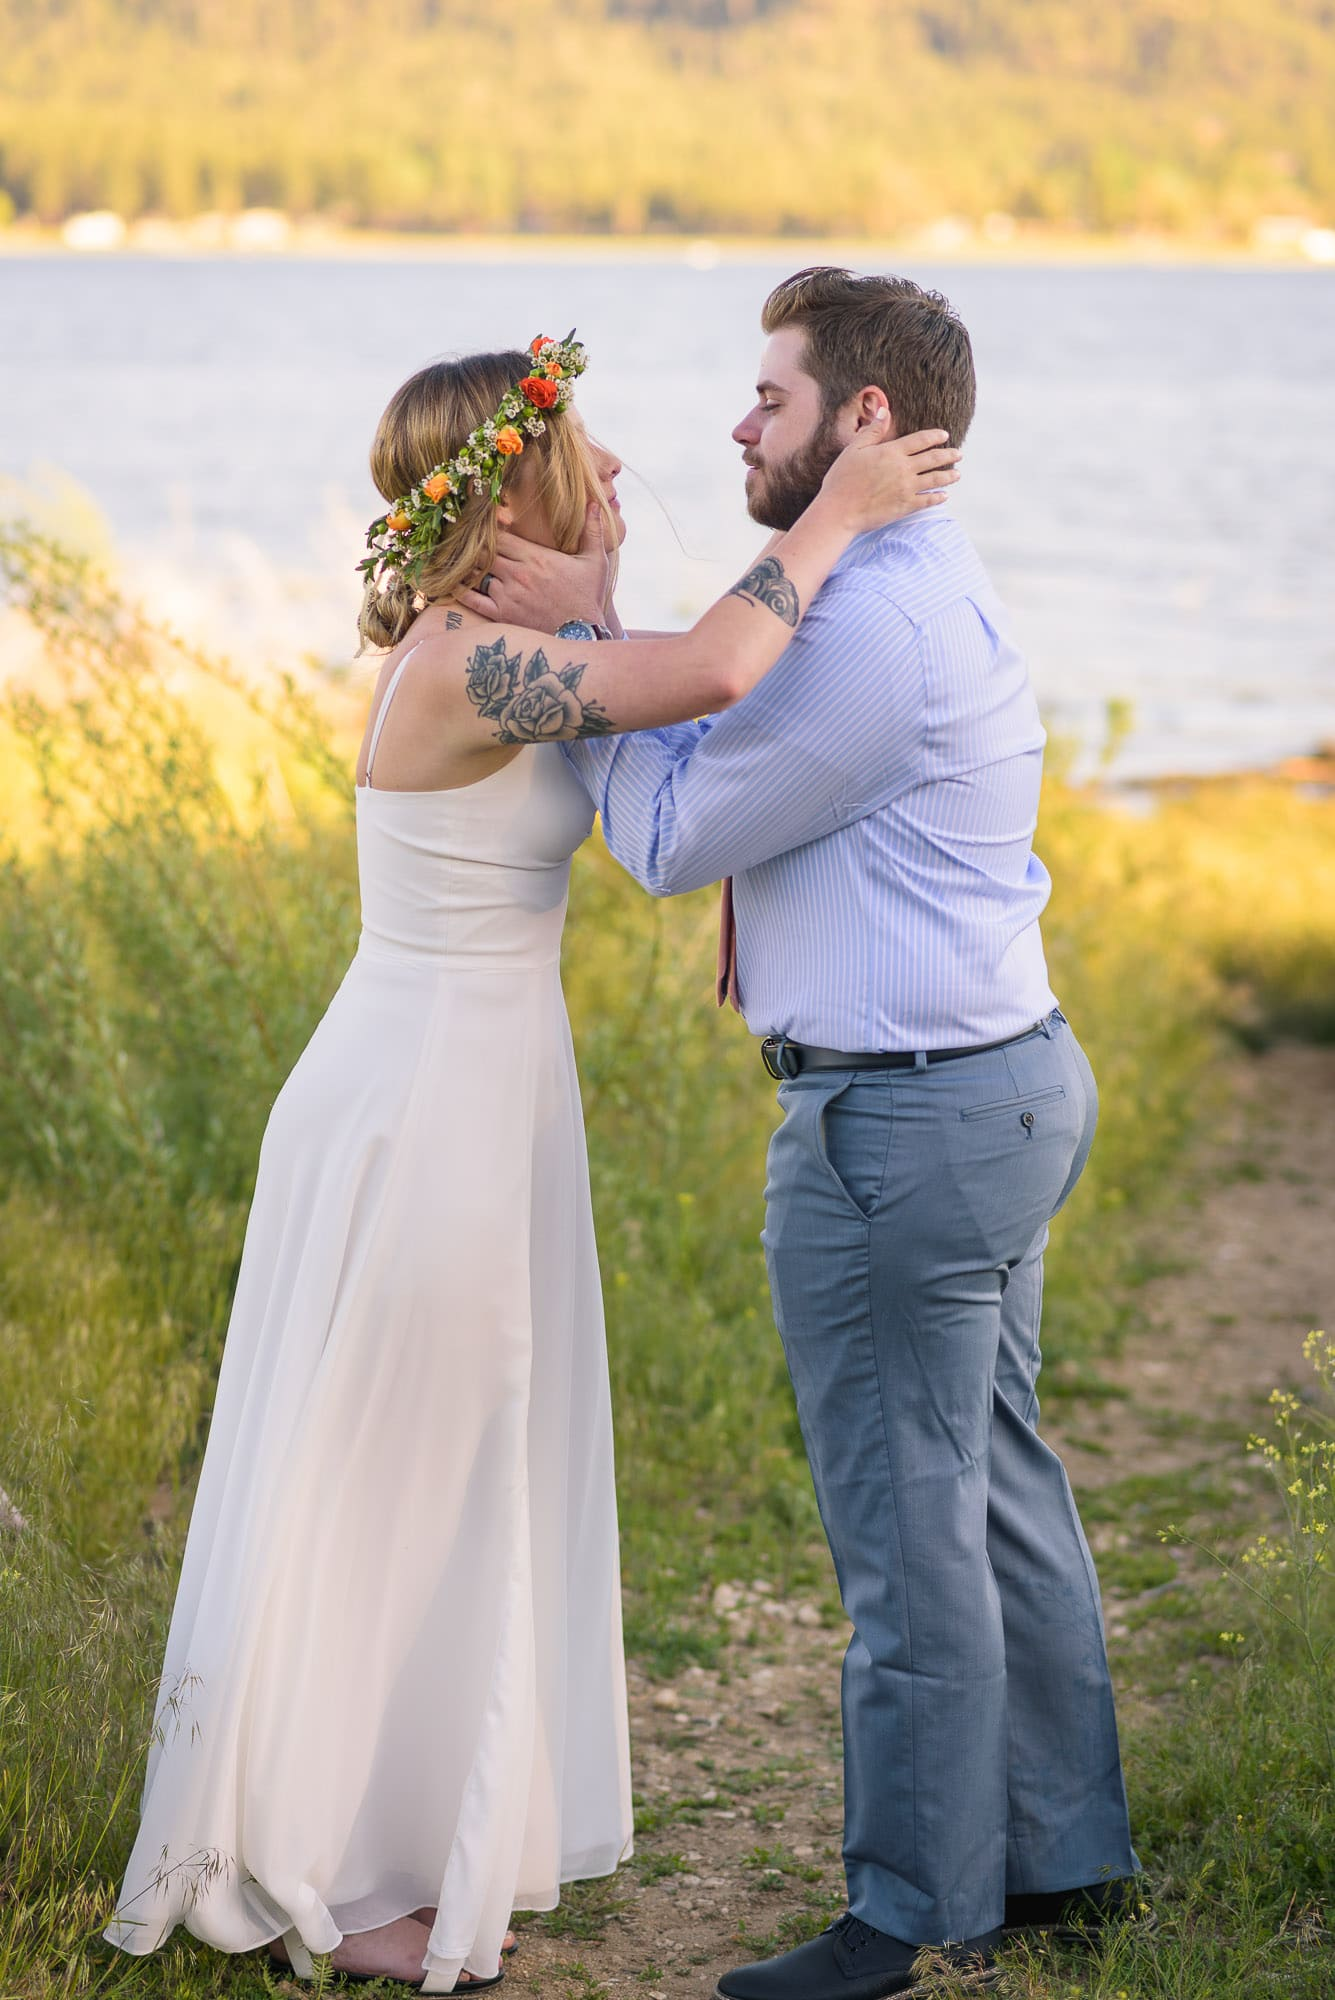 034_Alan_and_Heidi_Kensey_Josh_Big_Bear_Elopement